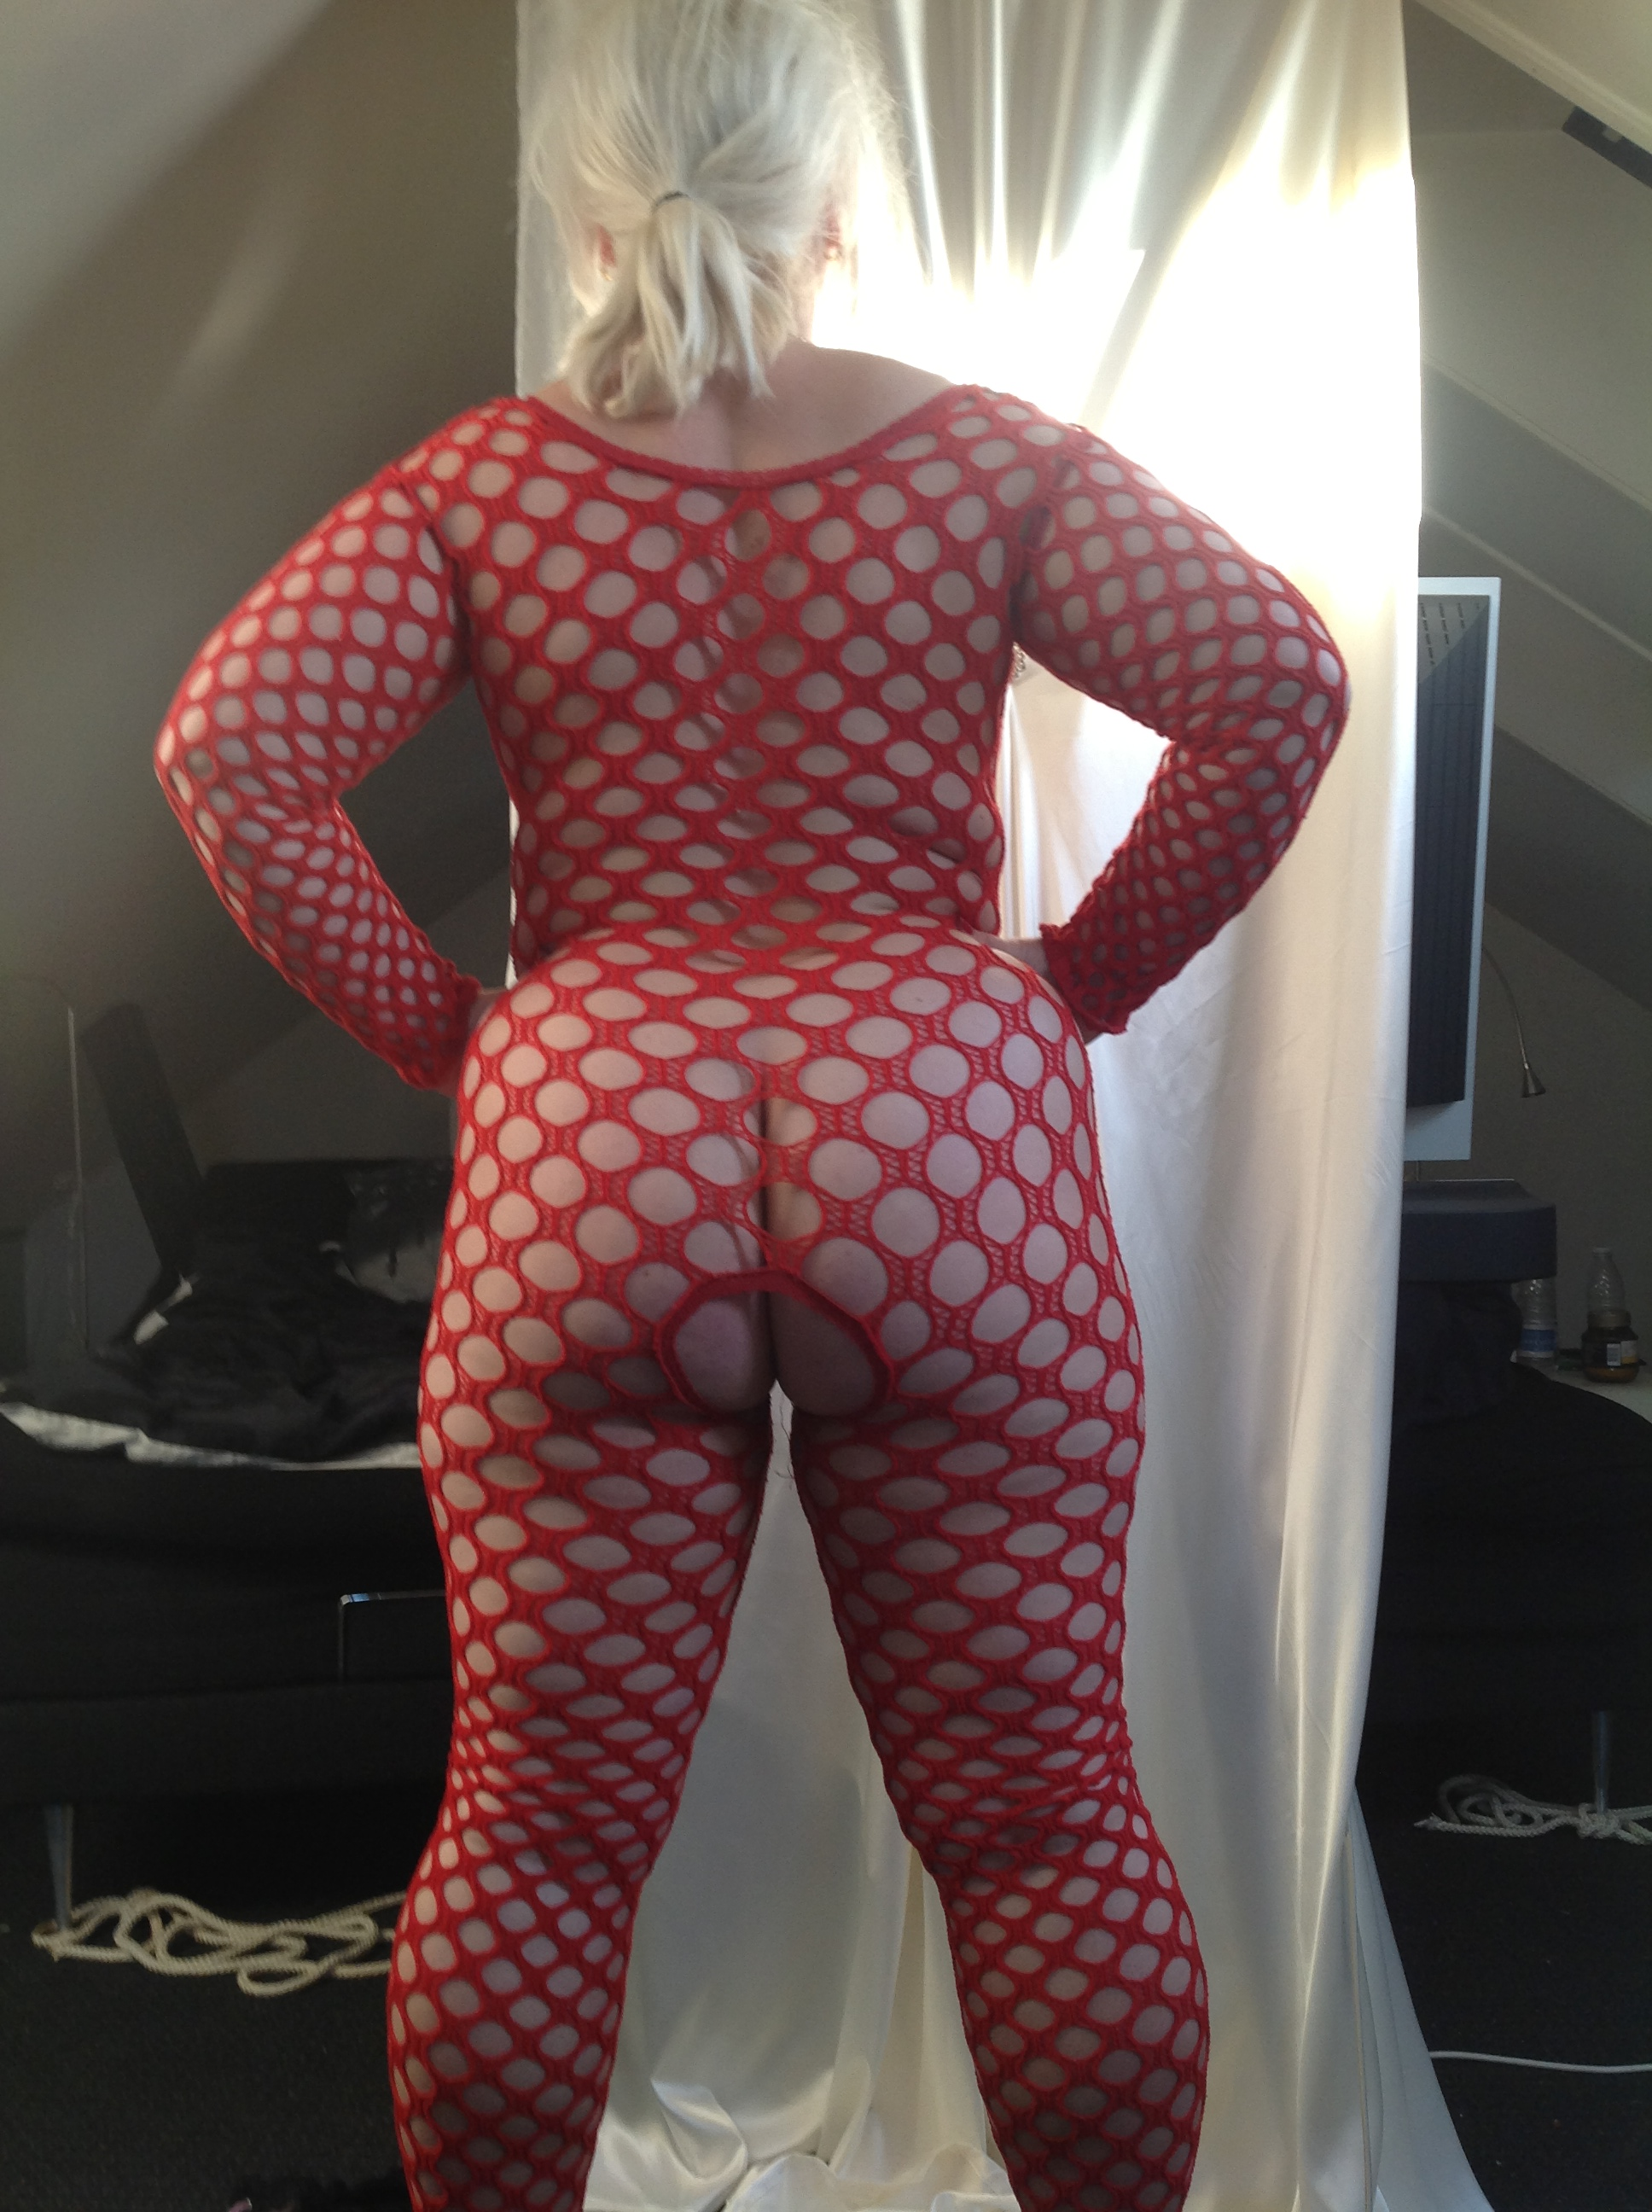 massage herning massage sex kolding